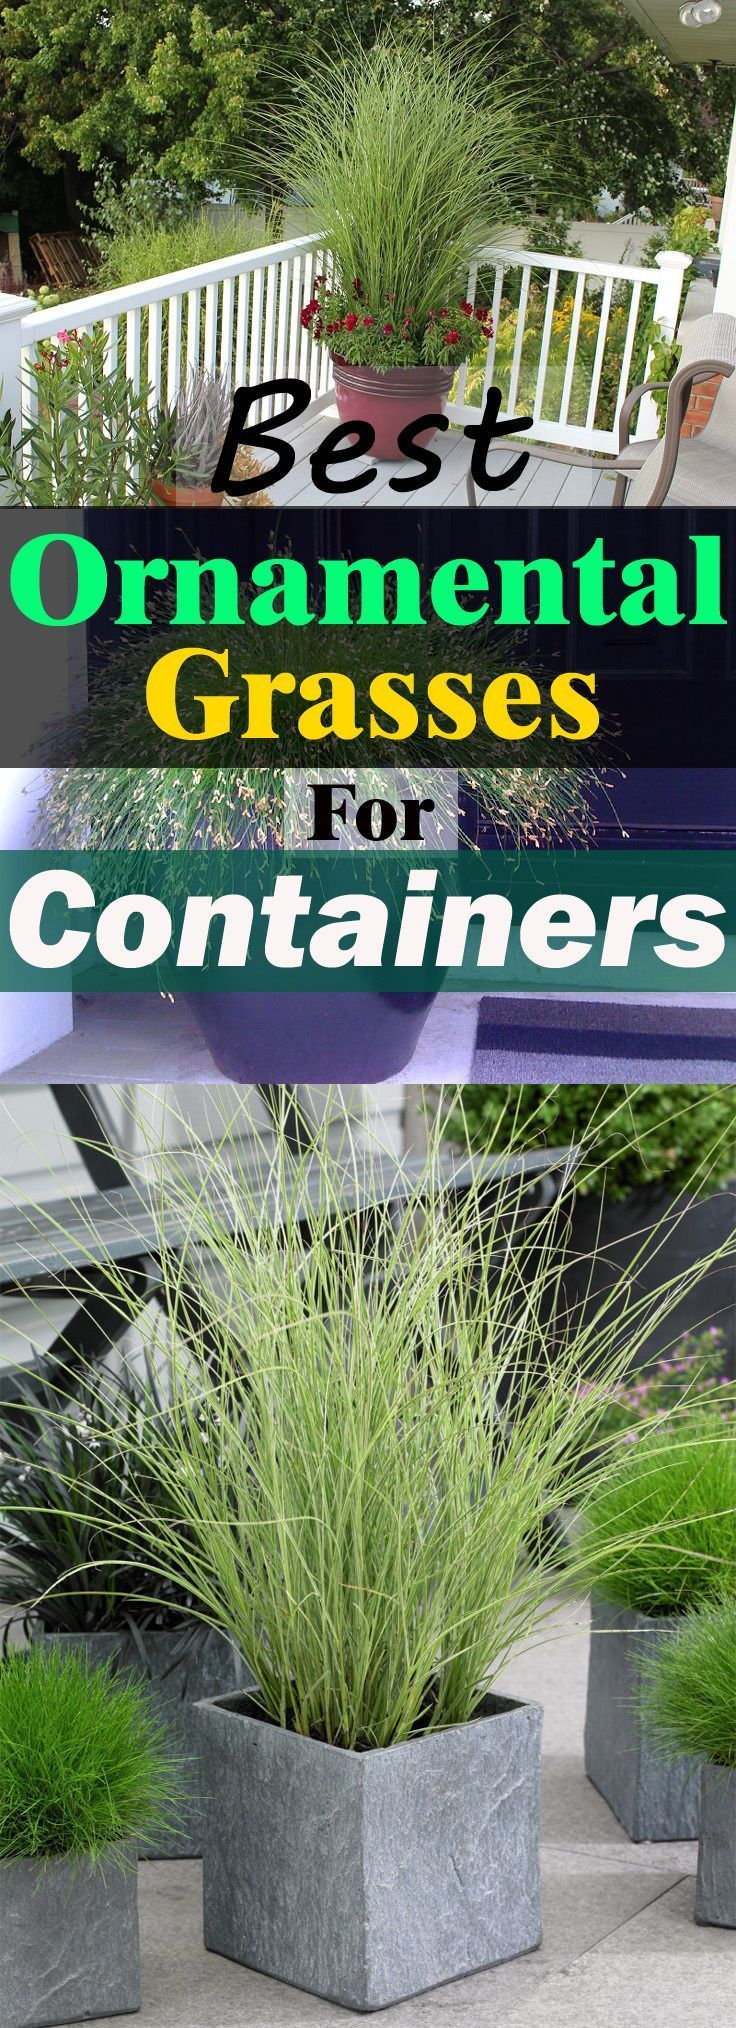 Best Ornamental Grasses for Containers and How to Grow them Kathy Thompson